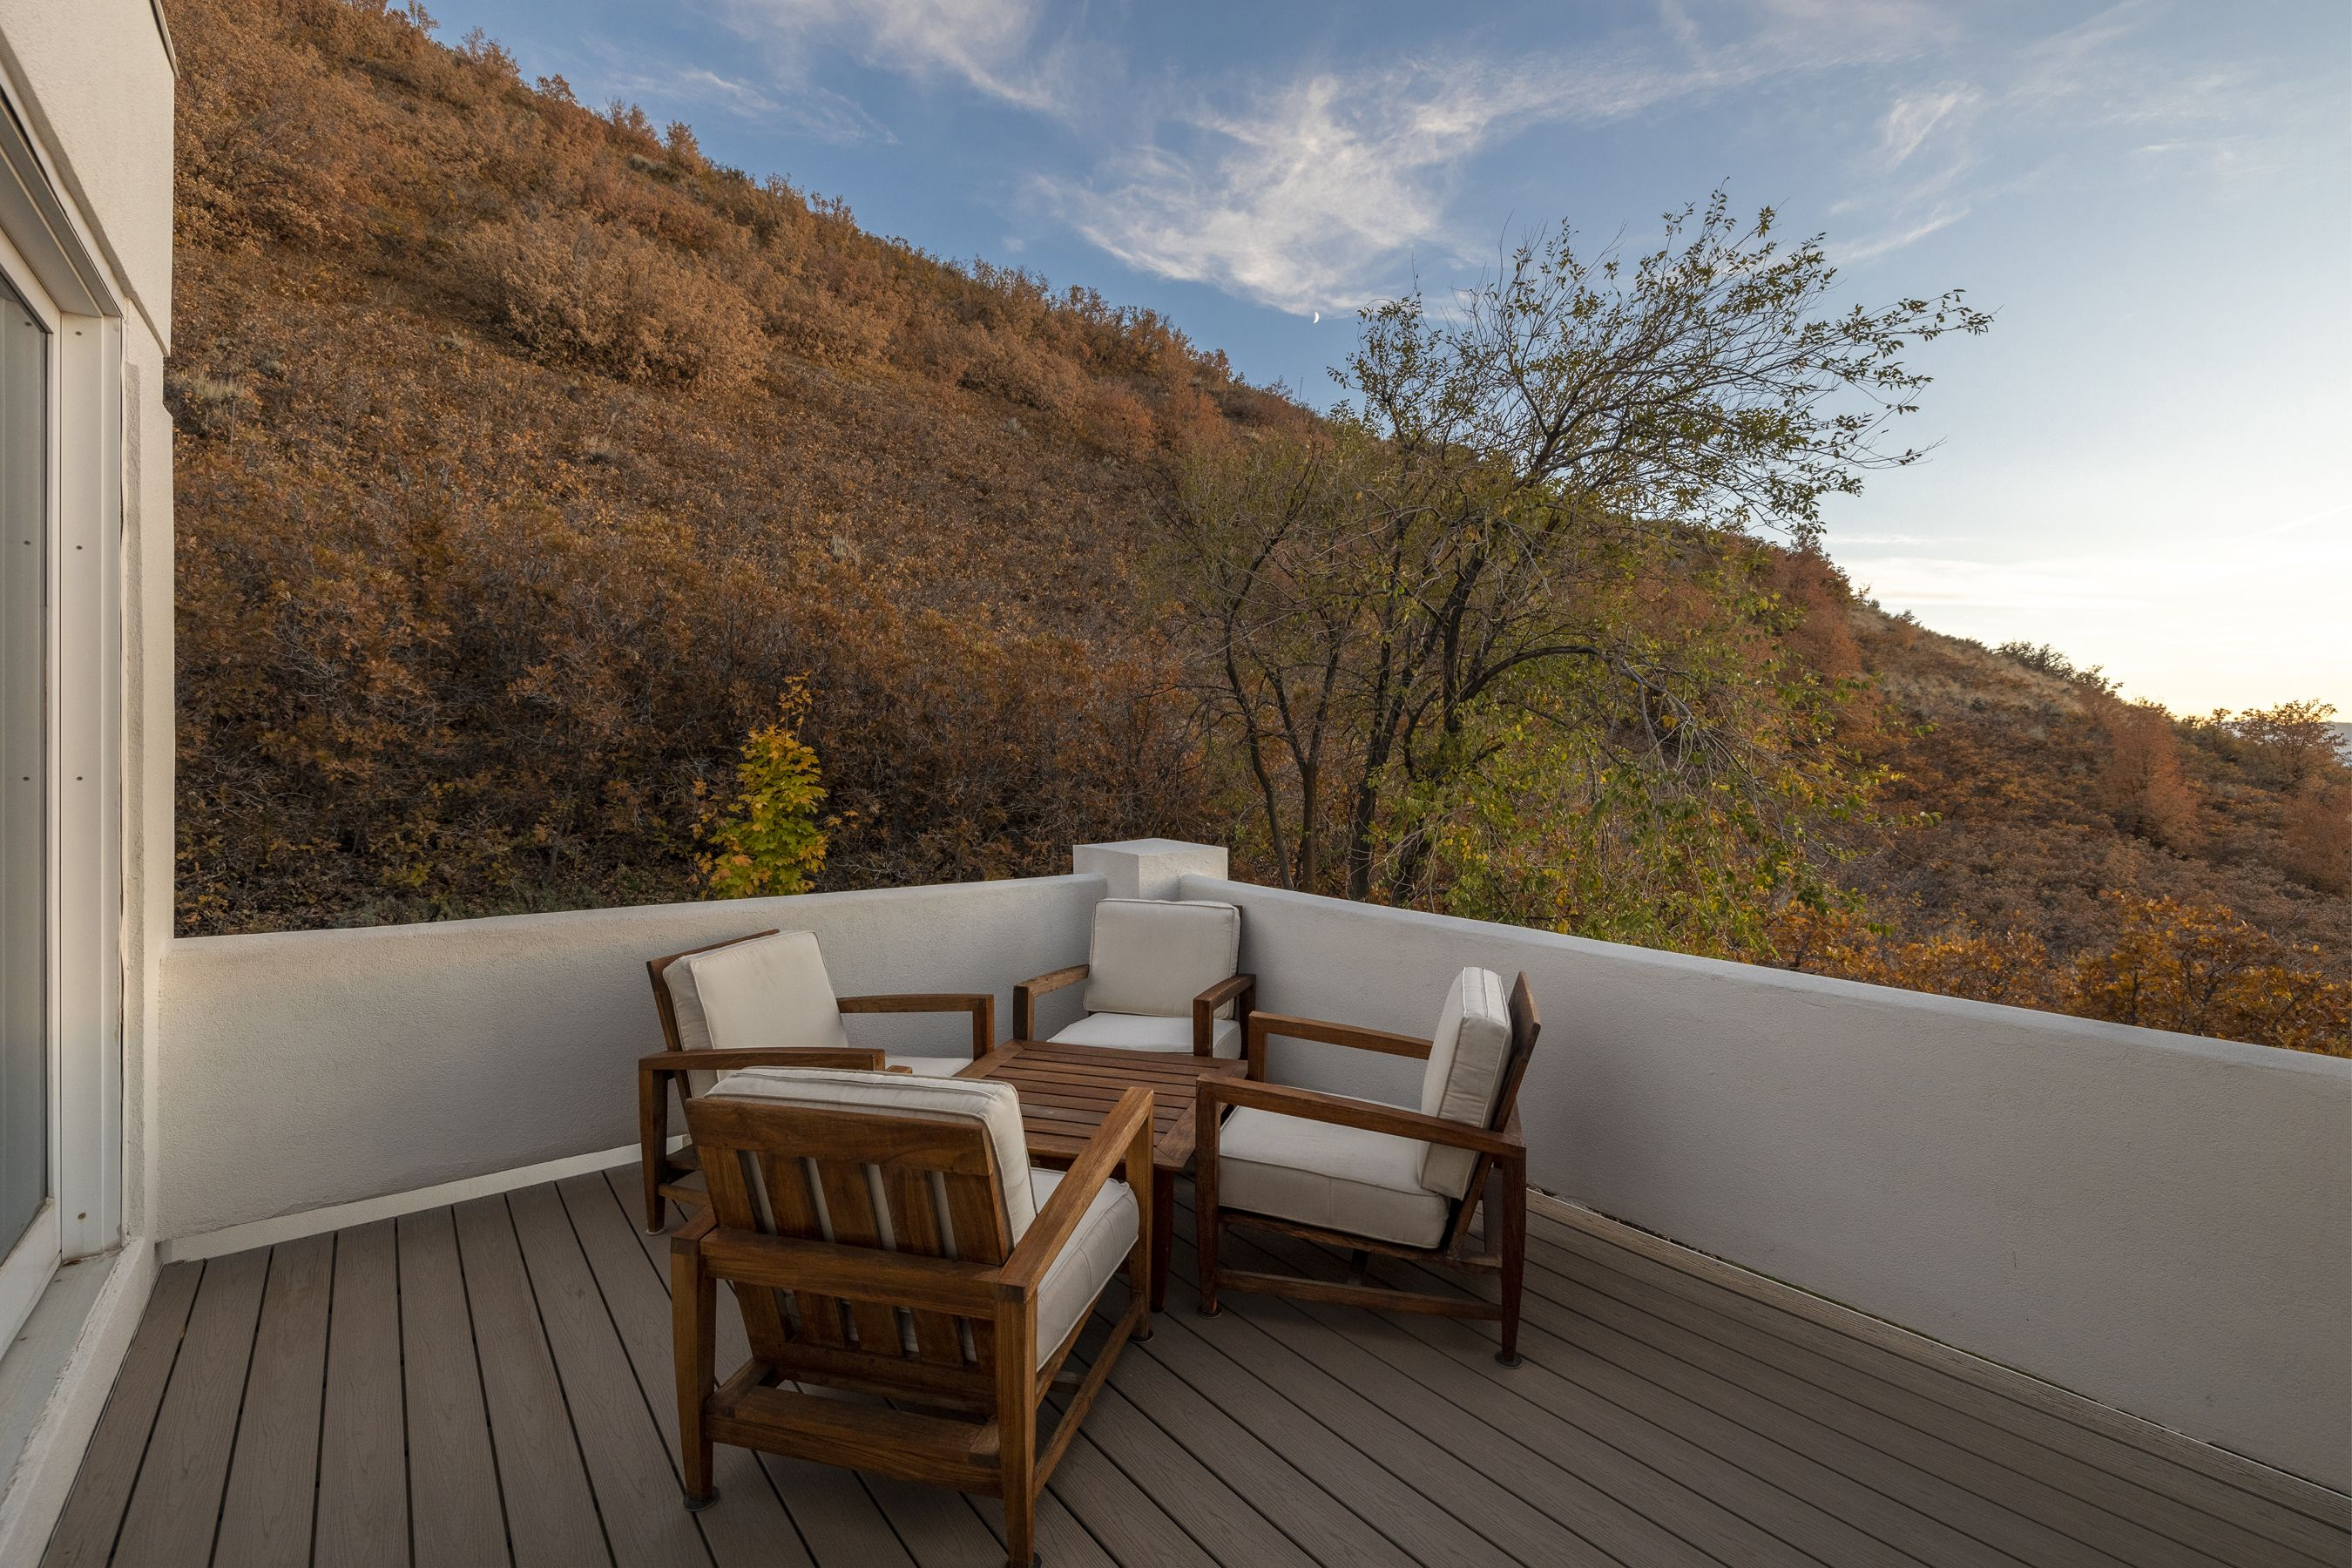 Relax after a long day to the peaceful sunset over the Salt Lake Valley, with a perspective that includes Downtown, the Great Salt Lake, and both the Wasatch and Oquirrh mountain ranges. #WindermereUtah #Balcony #Patio #OutdoorLiving #Deck #UtahHomes #LuxuryLiving #LuxuryLifestyle #LuxuryHomes